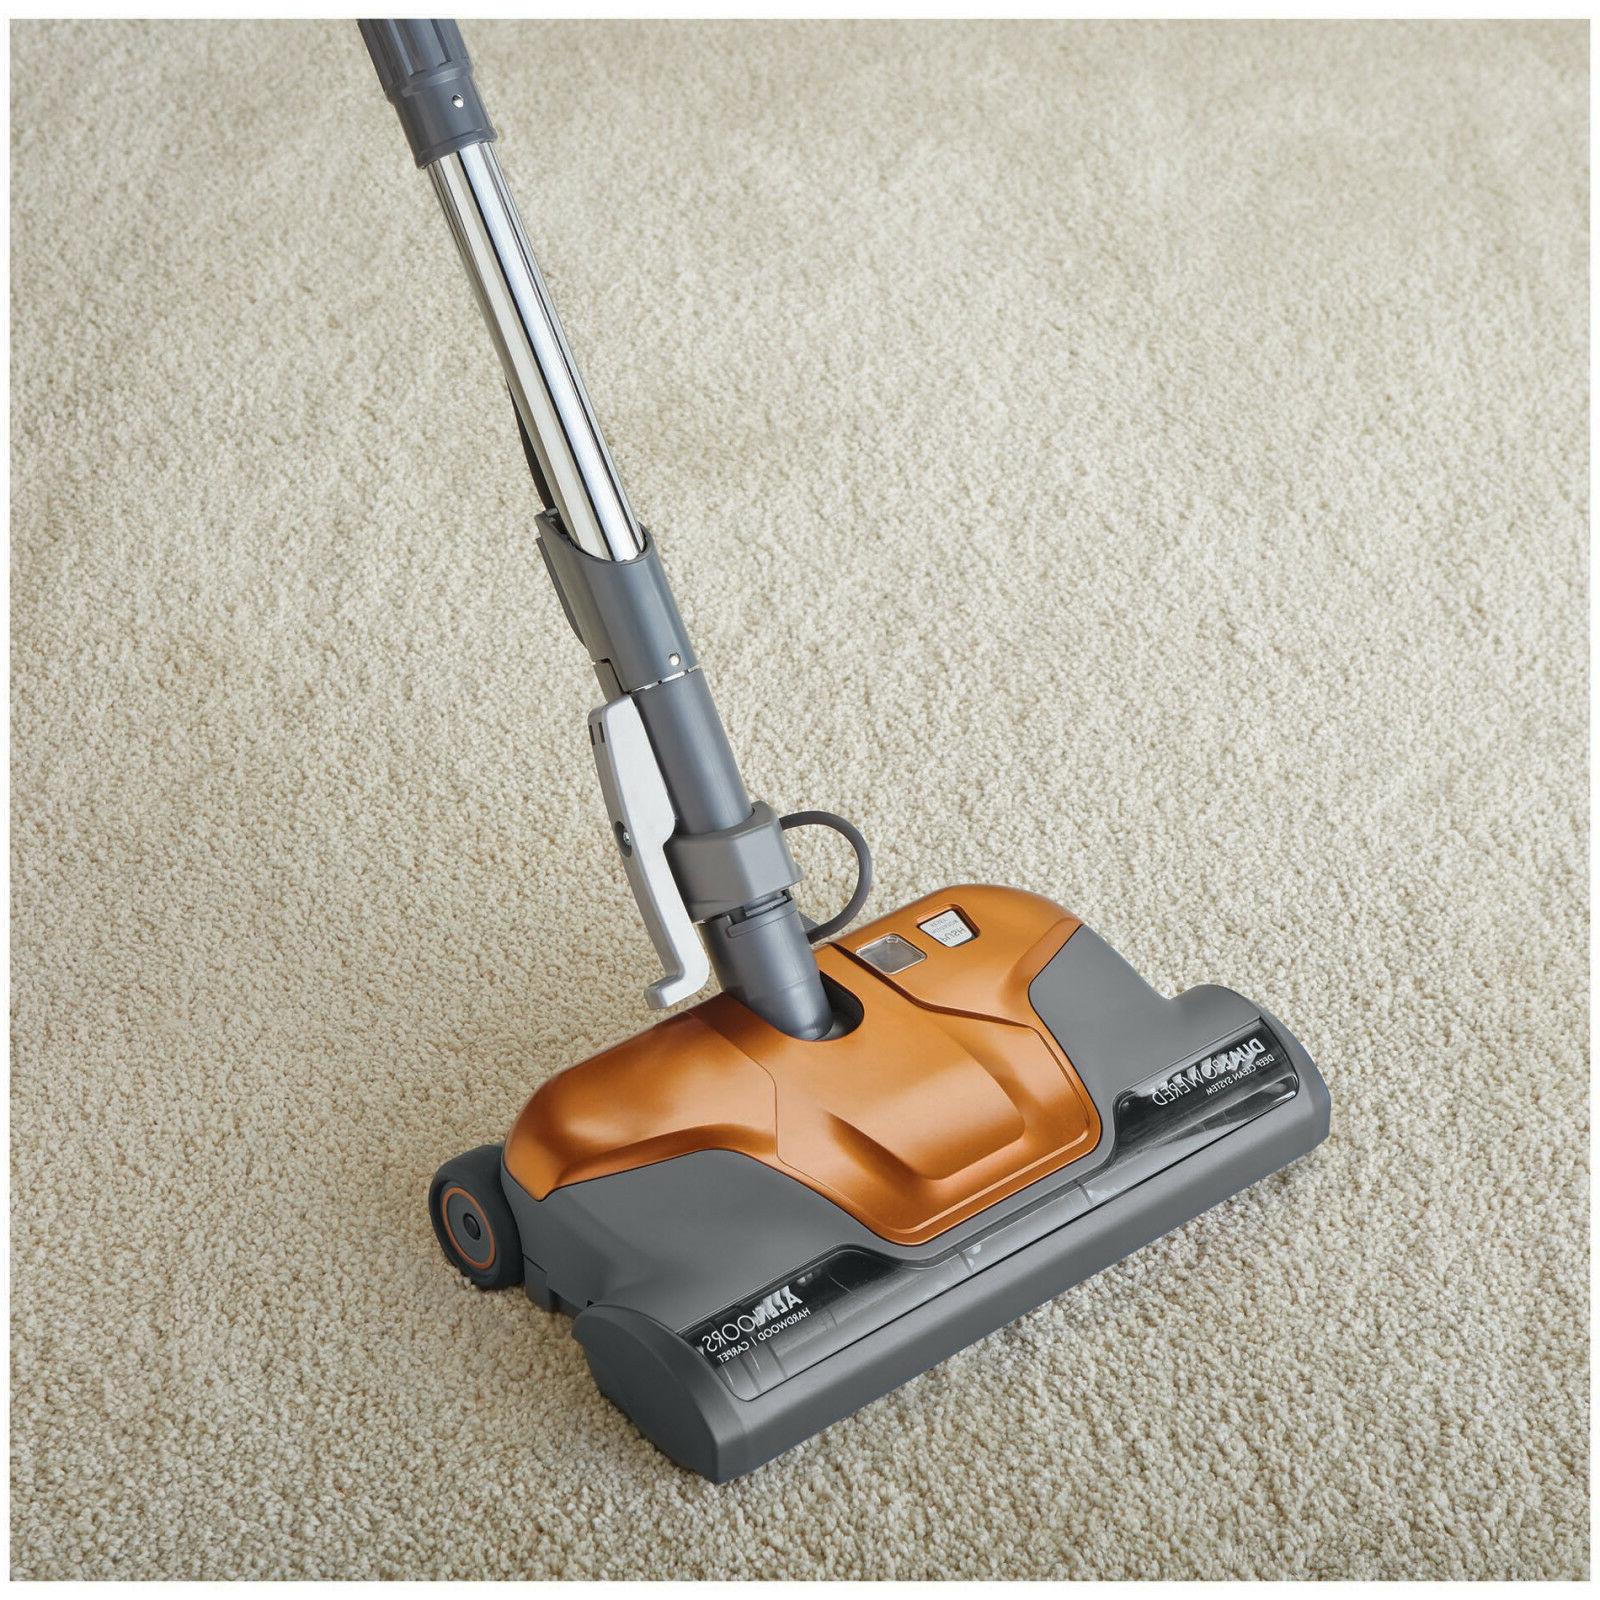 Kenmore Canister Vacuum Cleaner 200 Orange Free Shipping